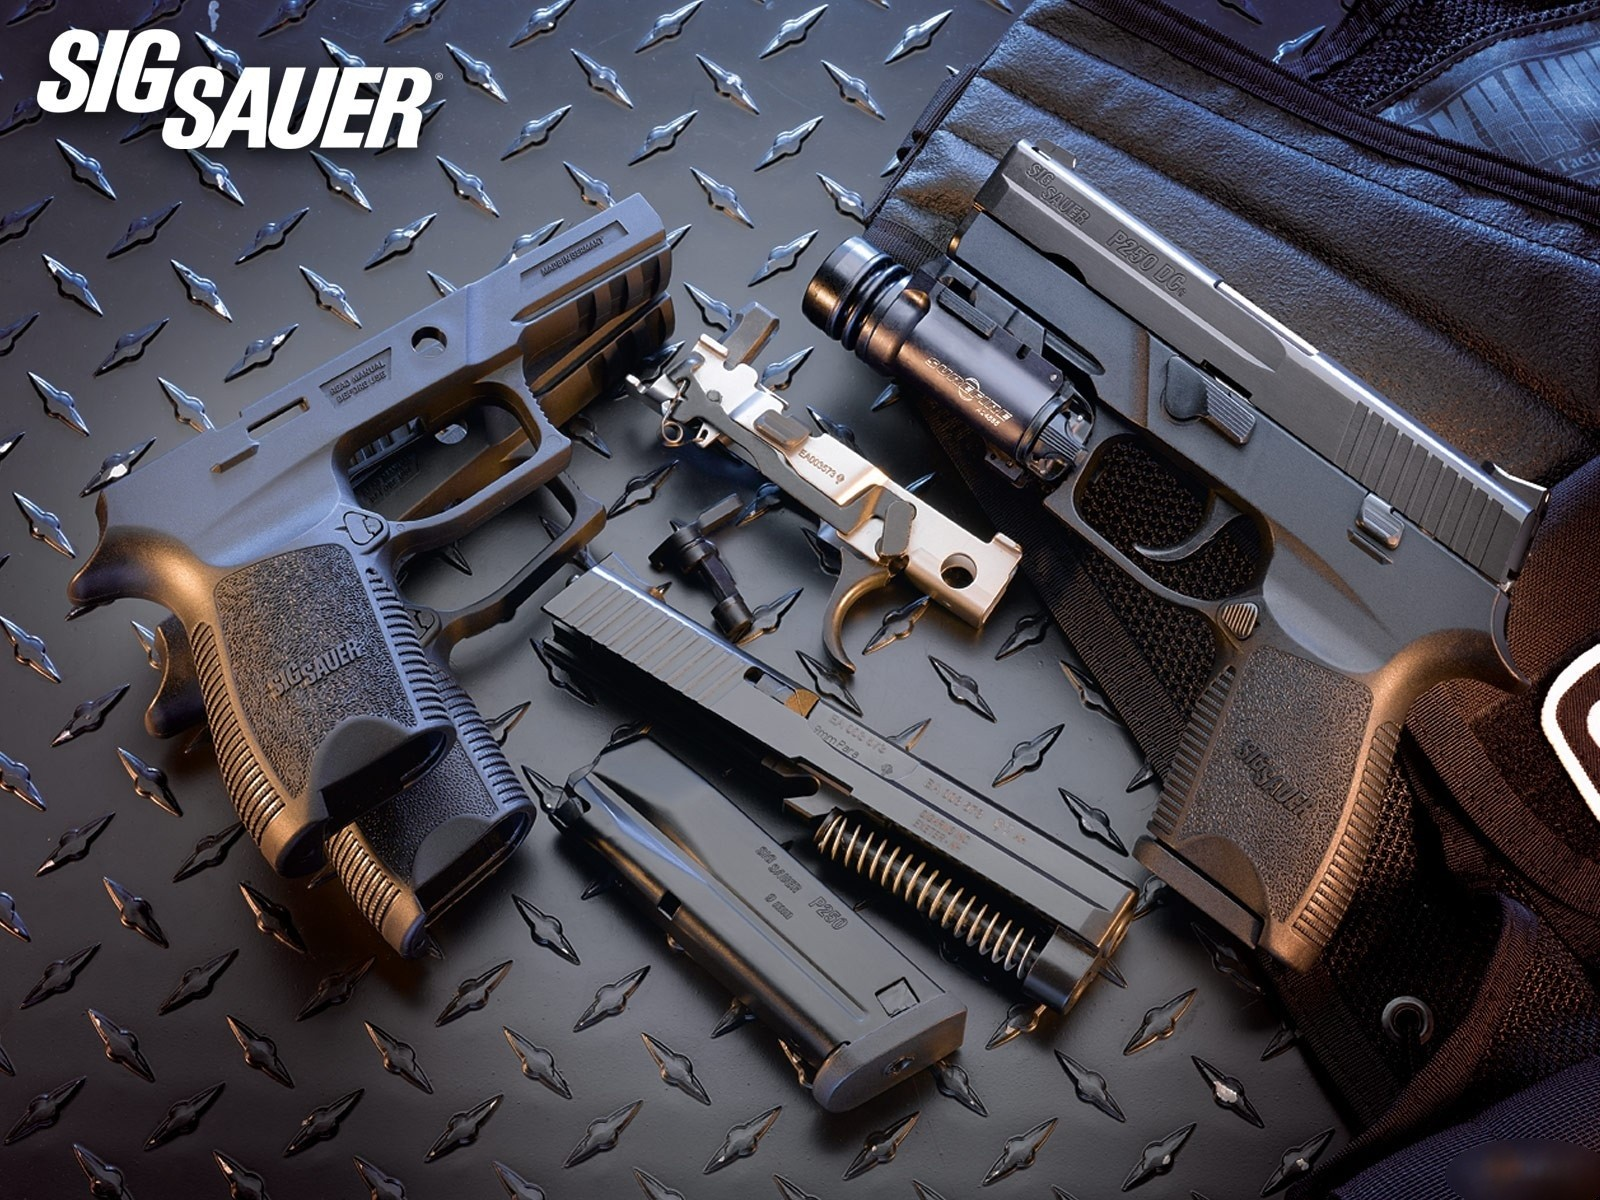 Sig Sauer Pistol Wallpaper and Background Image 1600x1200 ID 1600x1200